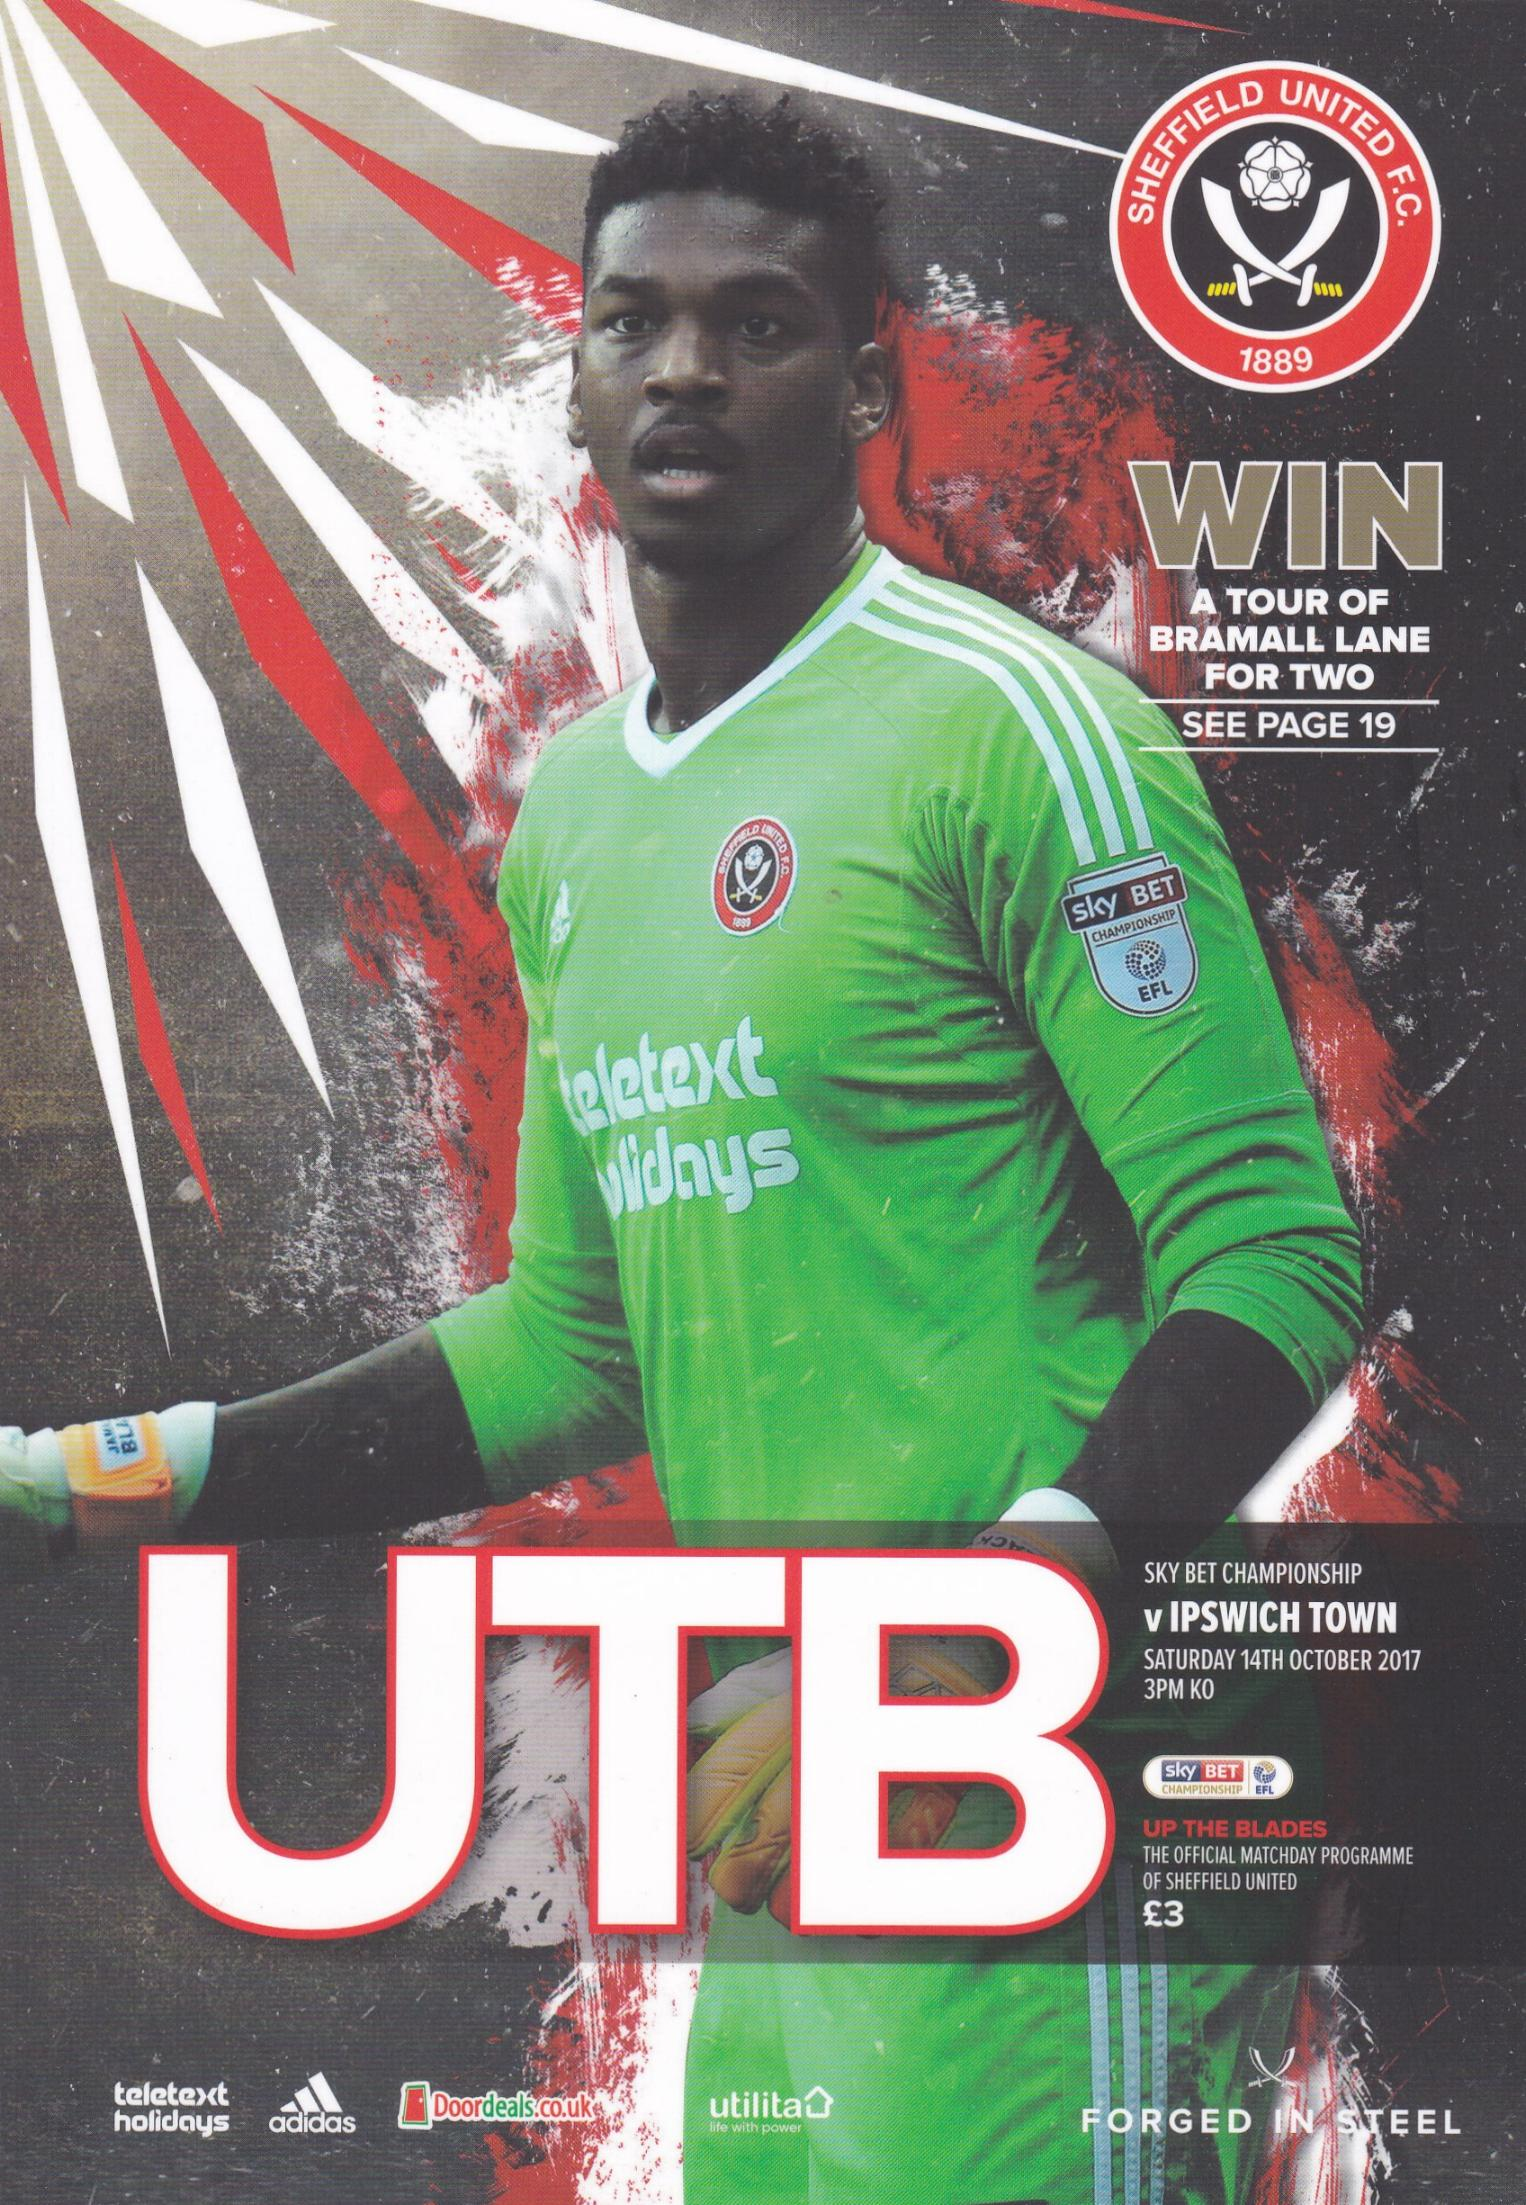 SHEFFIELD UNITED v IPSWICH TOWN 2017/18